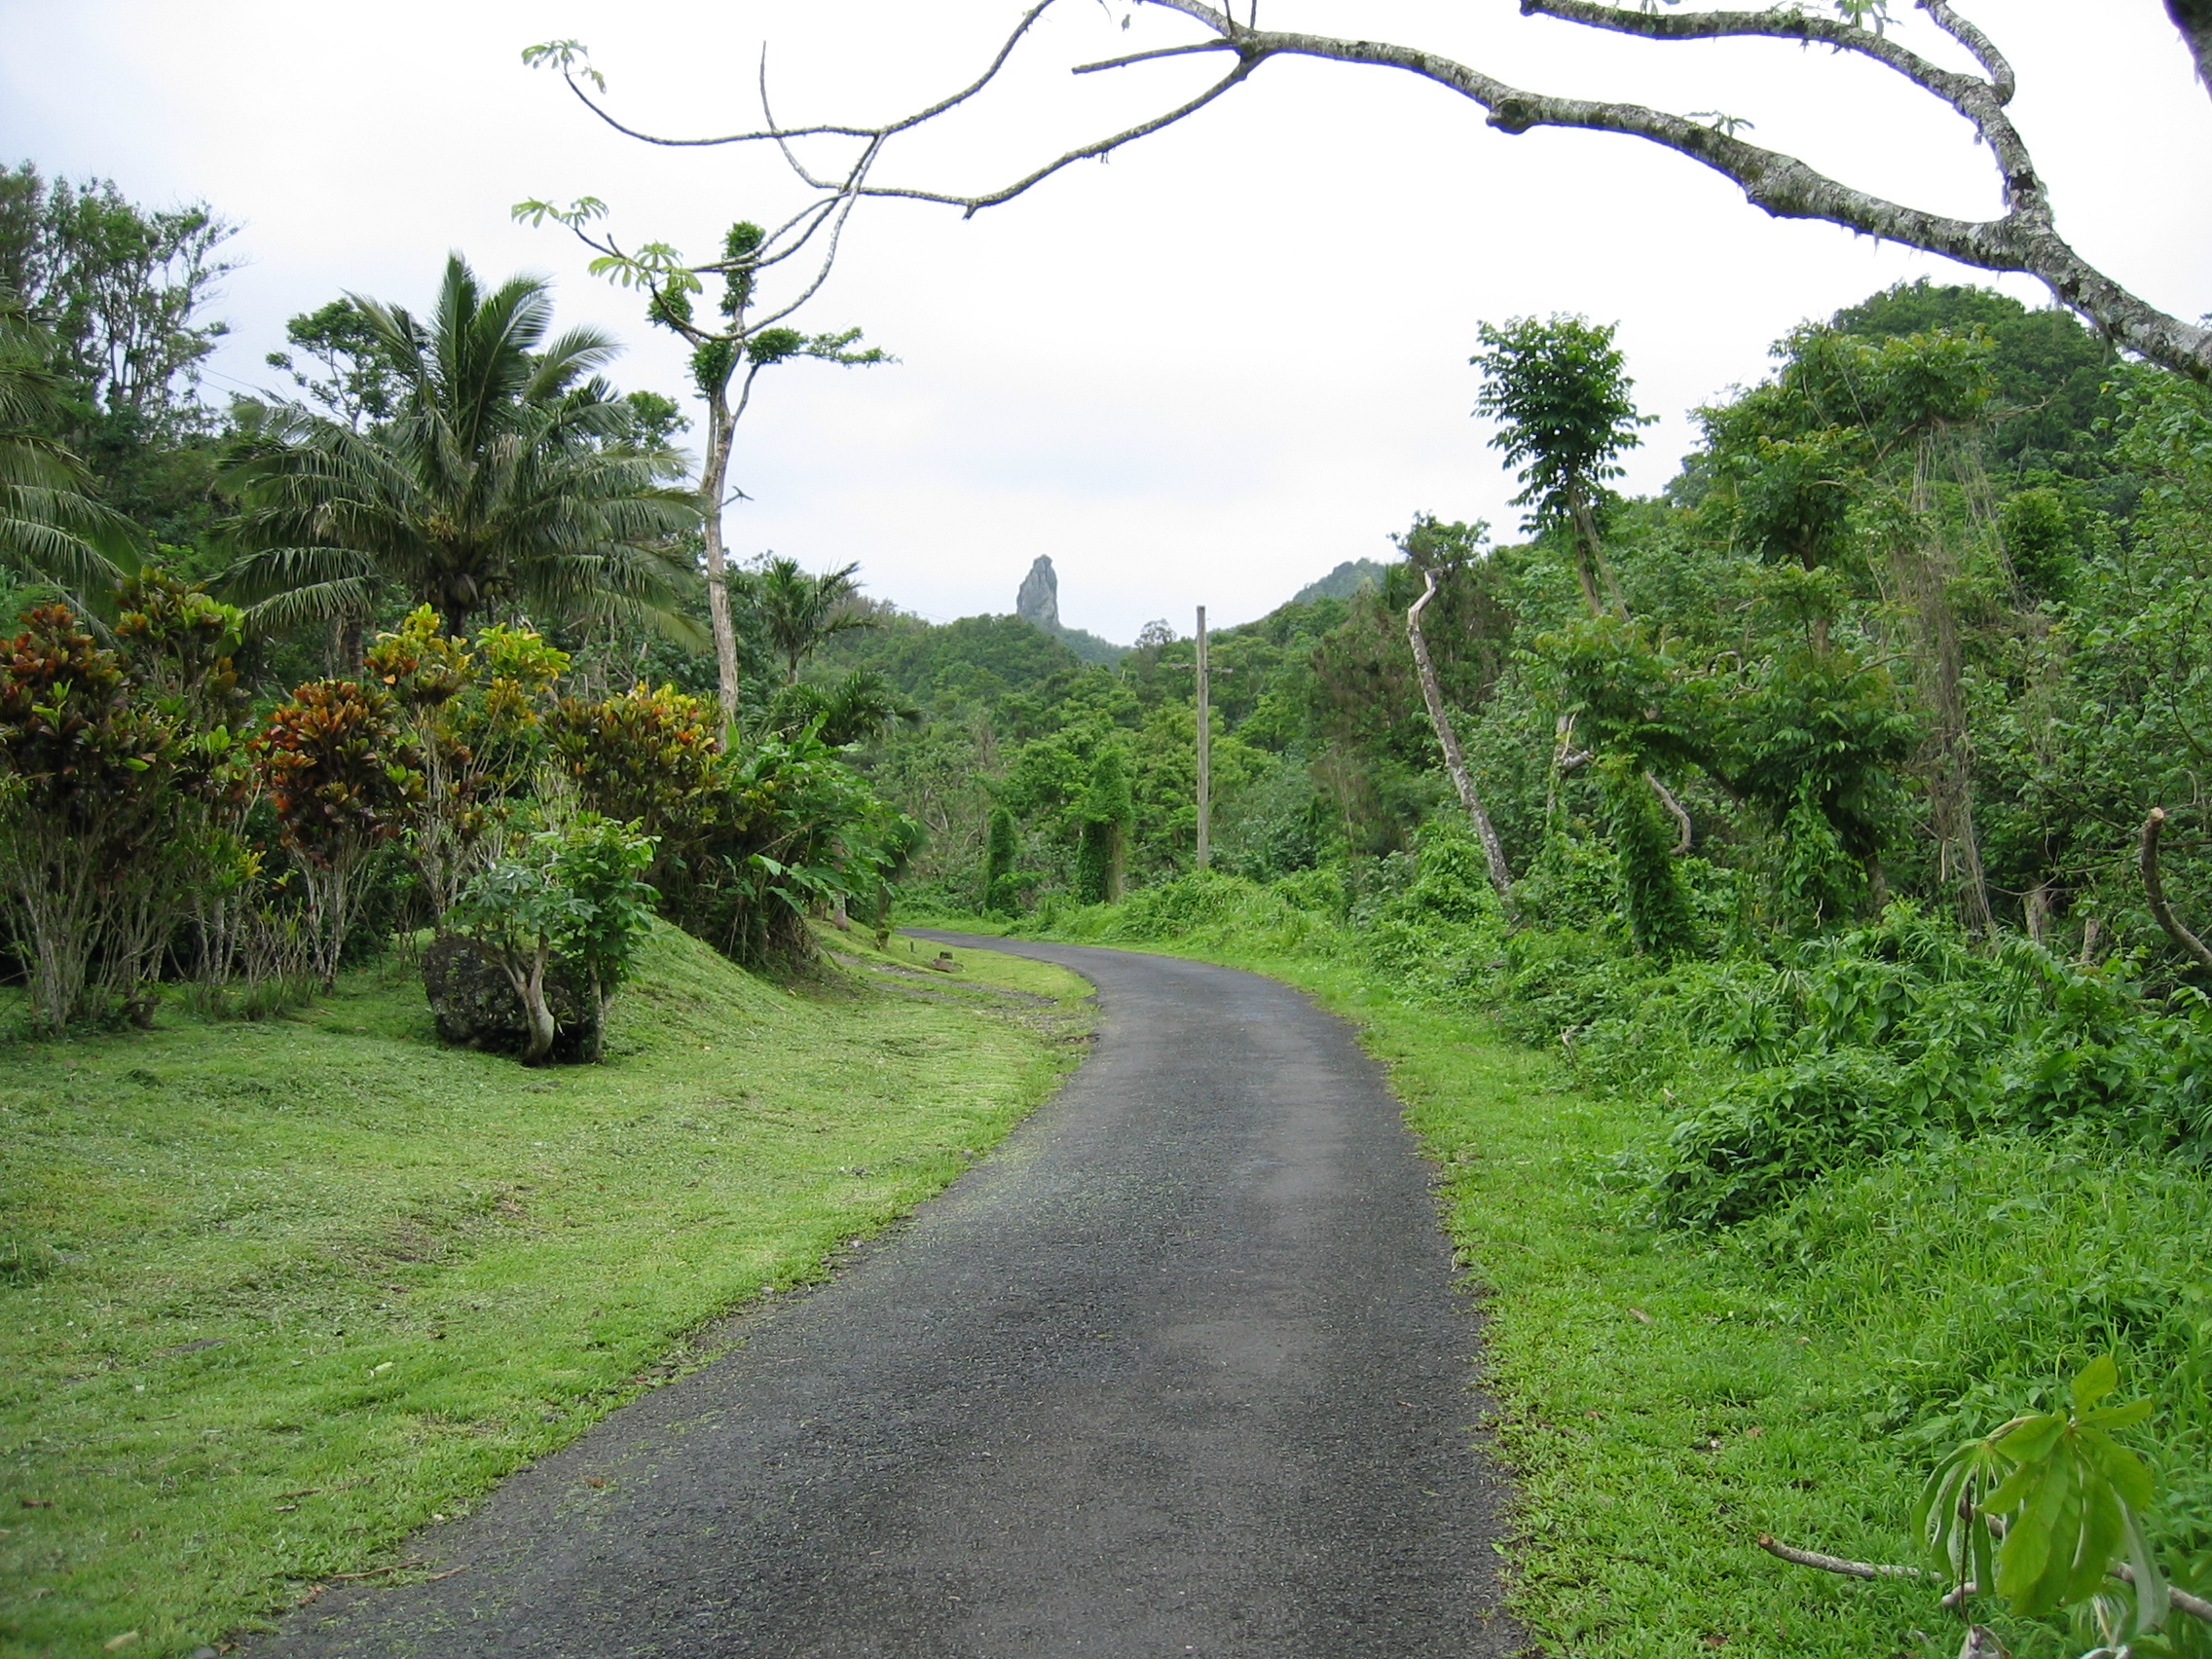 A road in Rarotonga, the Cook Islands.